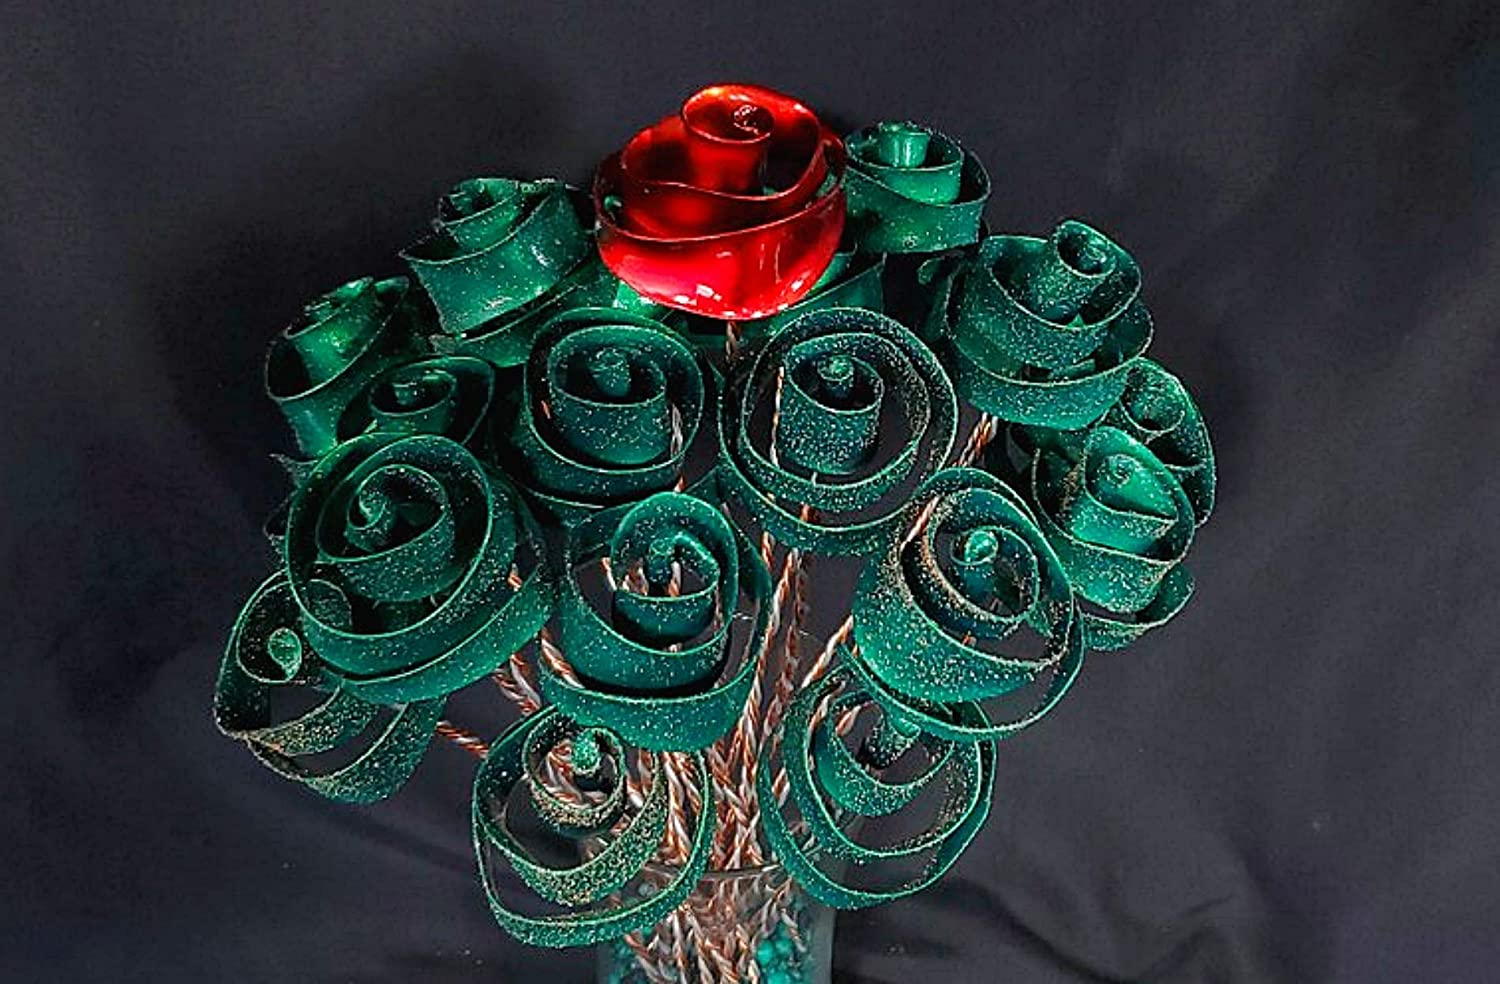 1 Stardust Green Forever Copper Rose #1599 I Love You Steampunk Housewarming Anniversary Wedding Valentines Mothers Day Christmas